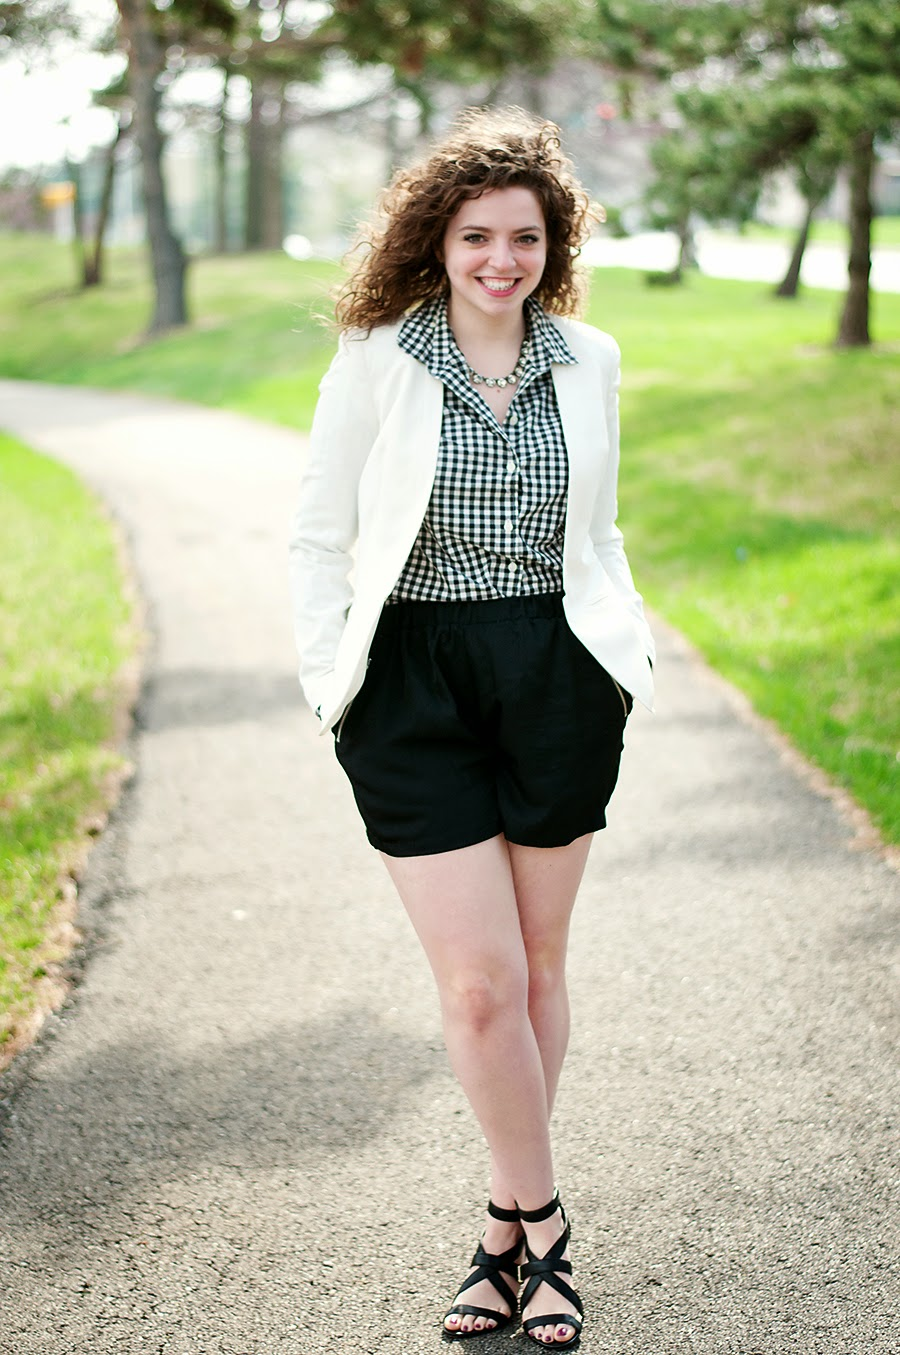 Shorts with blazer and gingham top for spring